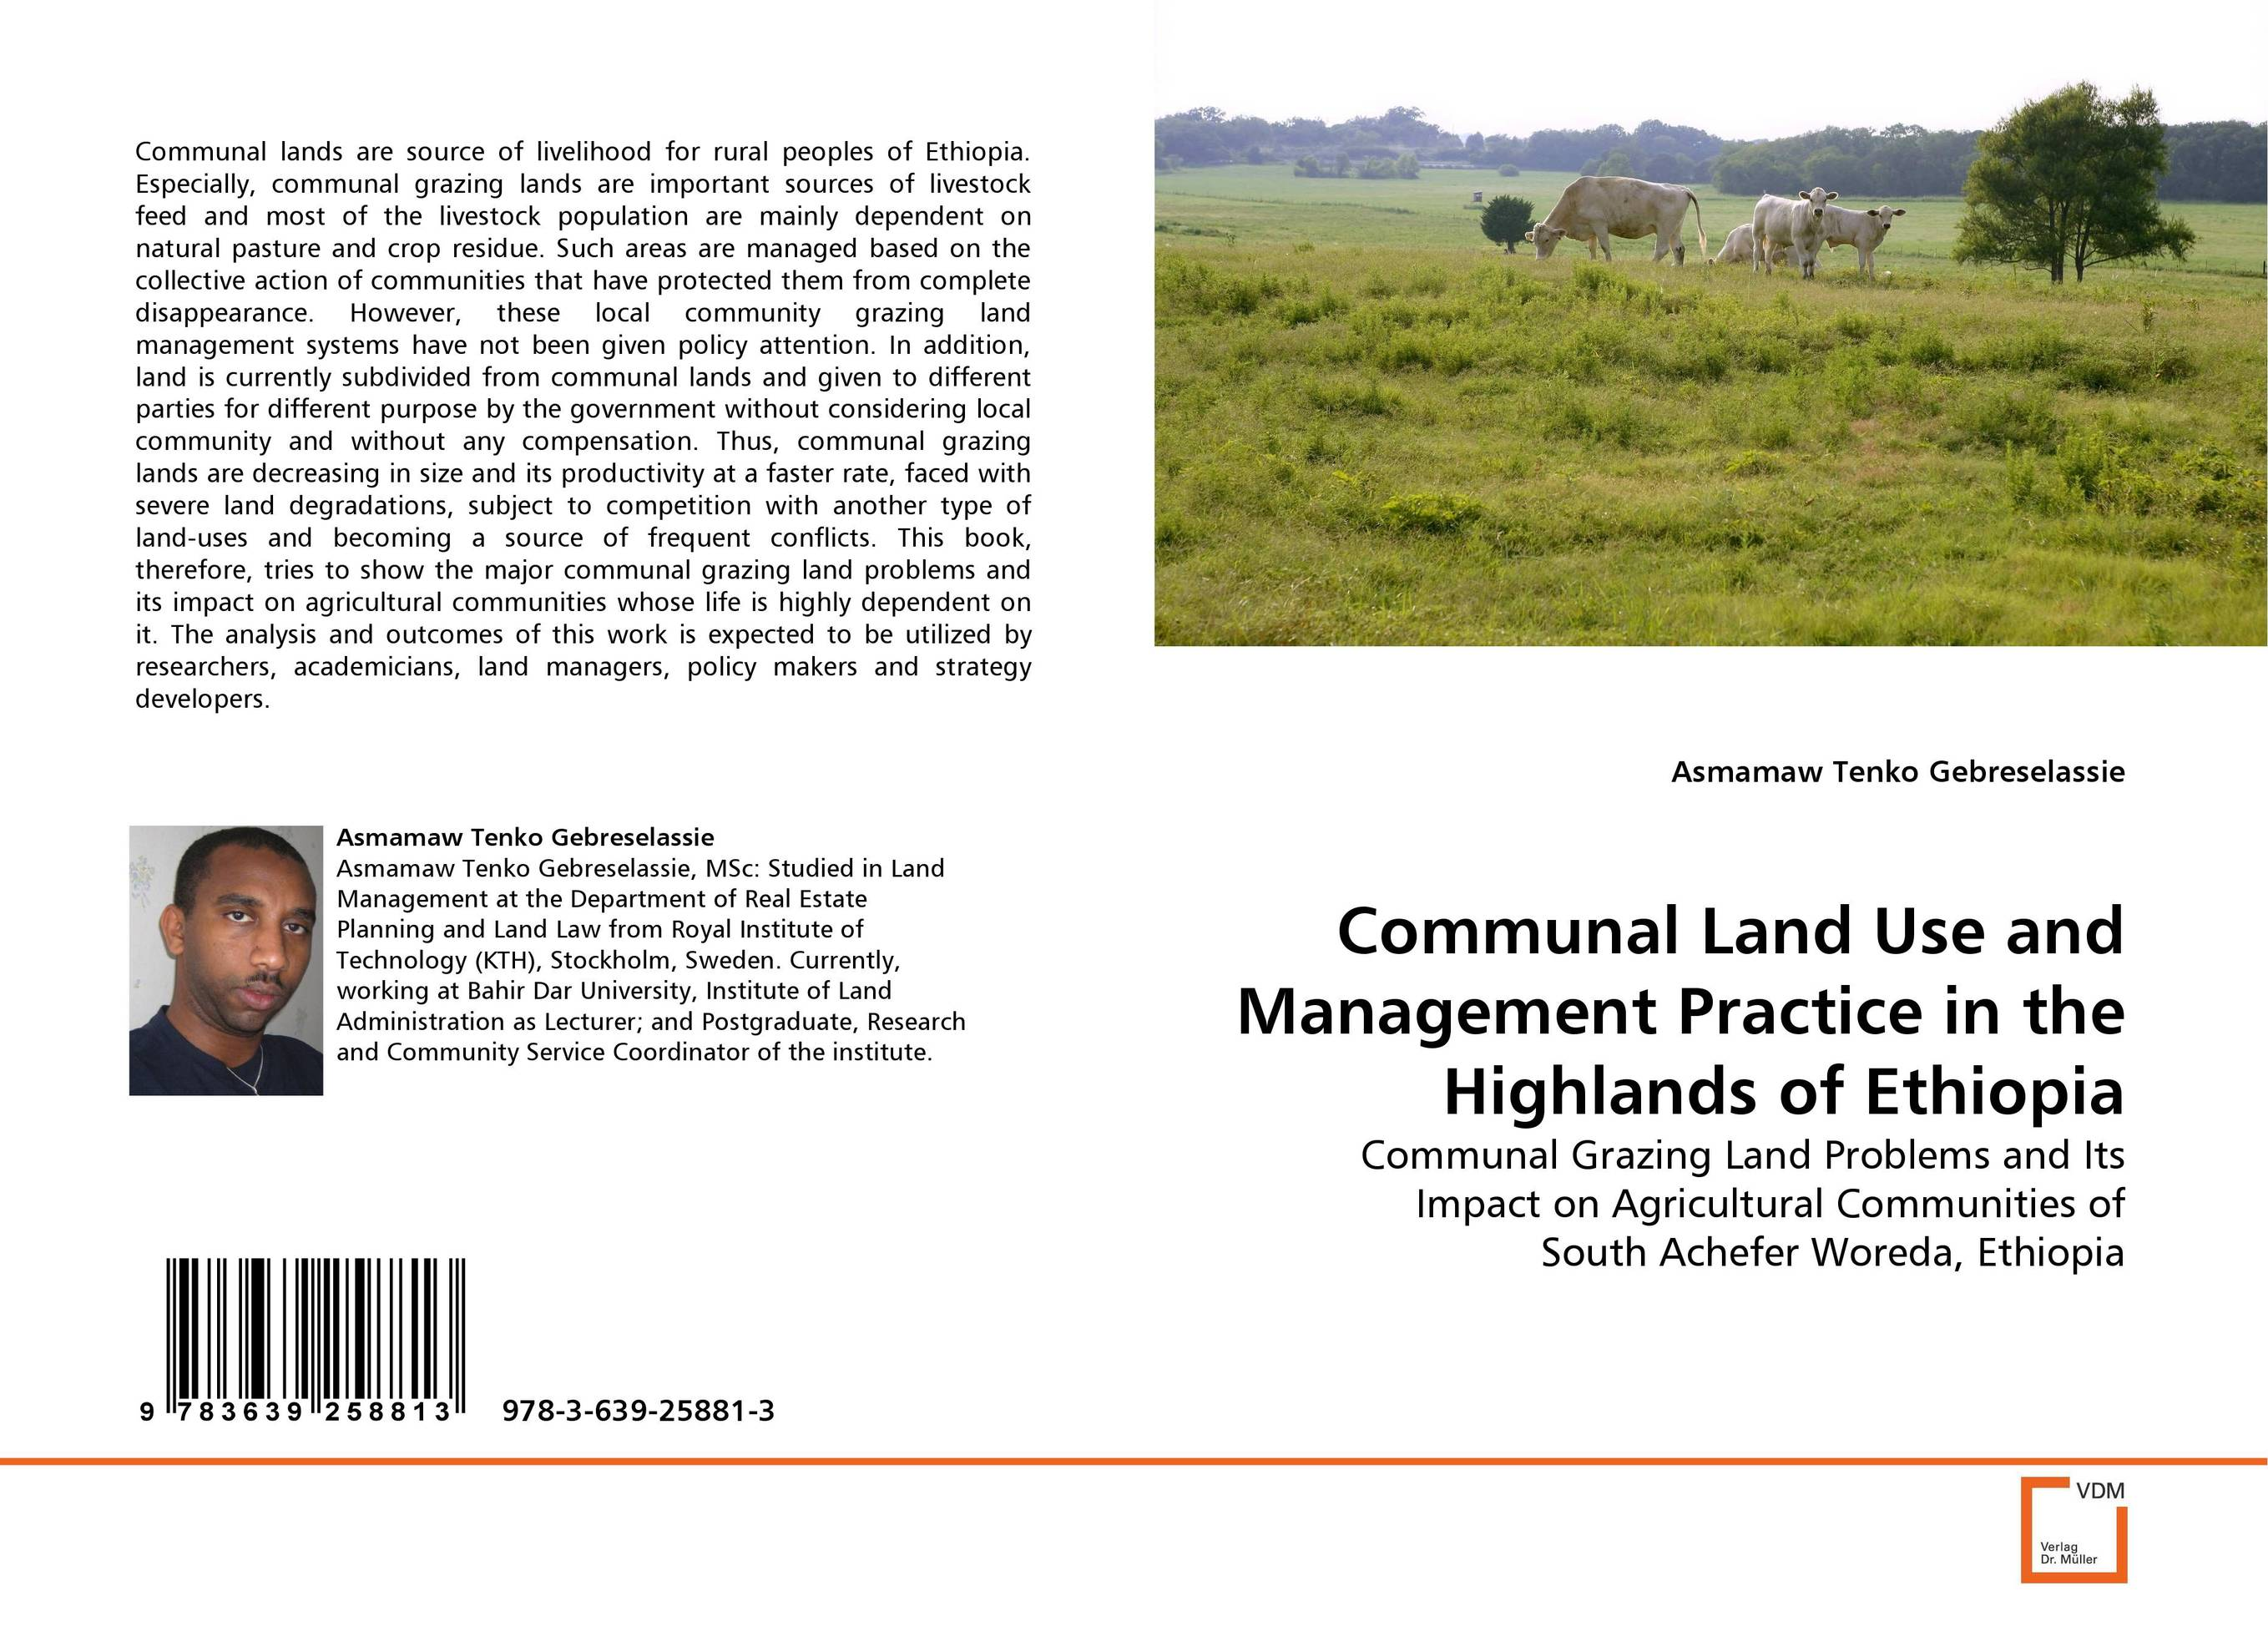 Communal Land Use and Management Practice in the Highlands of Ethiopia livestock grazing and natural resource management in kumaon hills